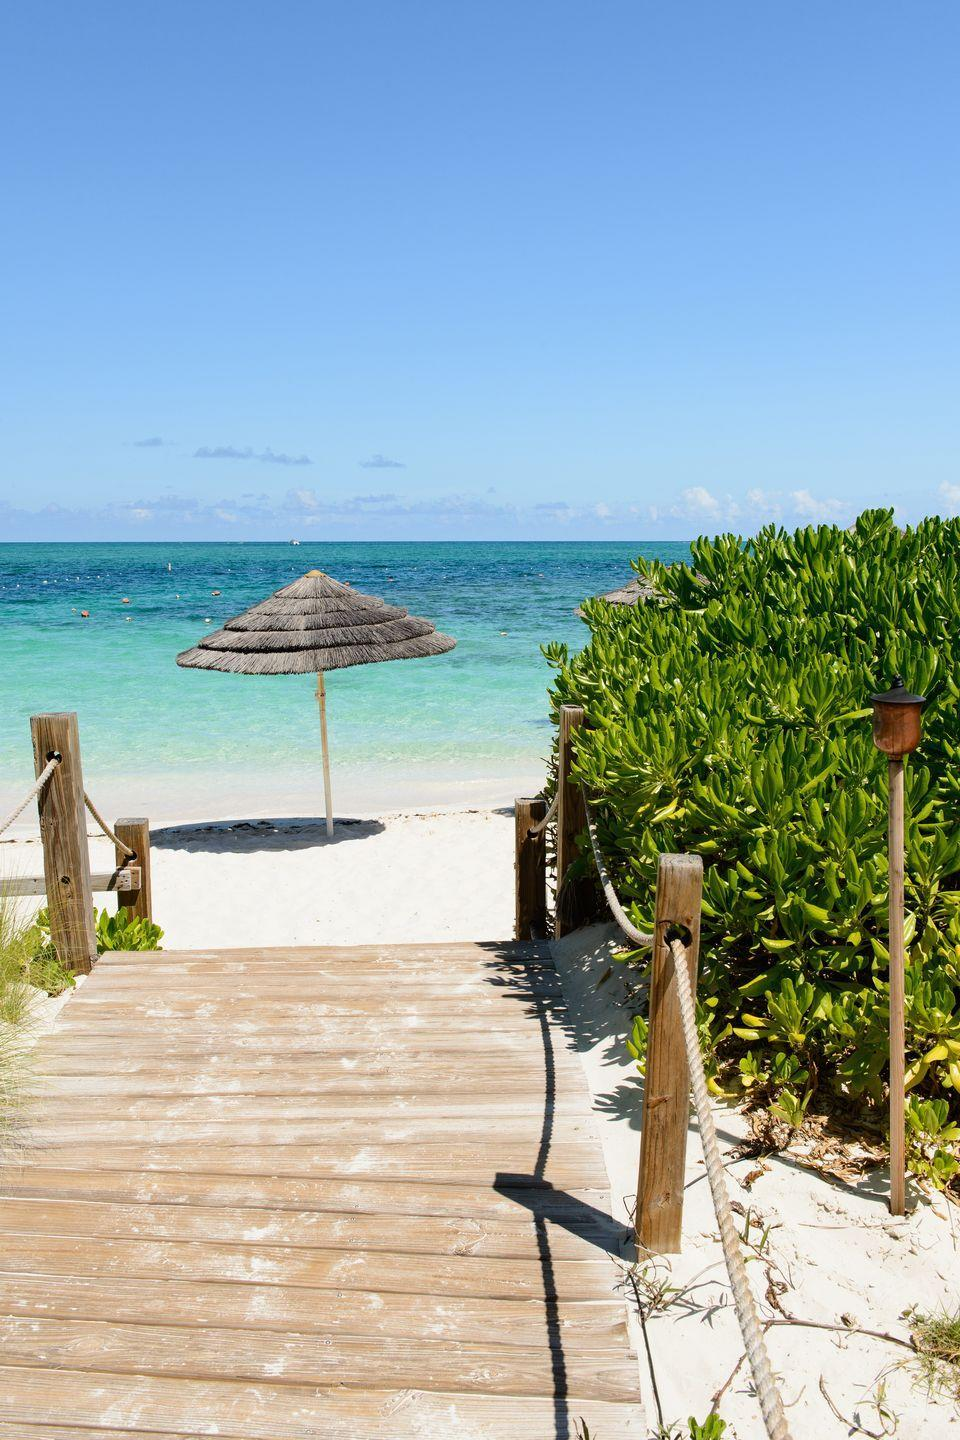 <p>With 12 miles of white sand beaches and the clearest water you'll likely ever encounter, there's no question why this beach on the north shore of the island of Providenciales made this list.</p>